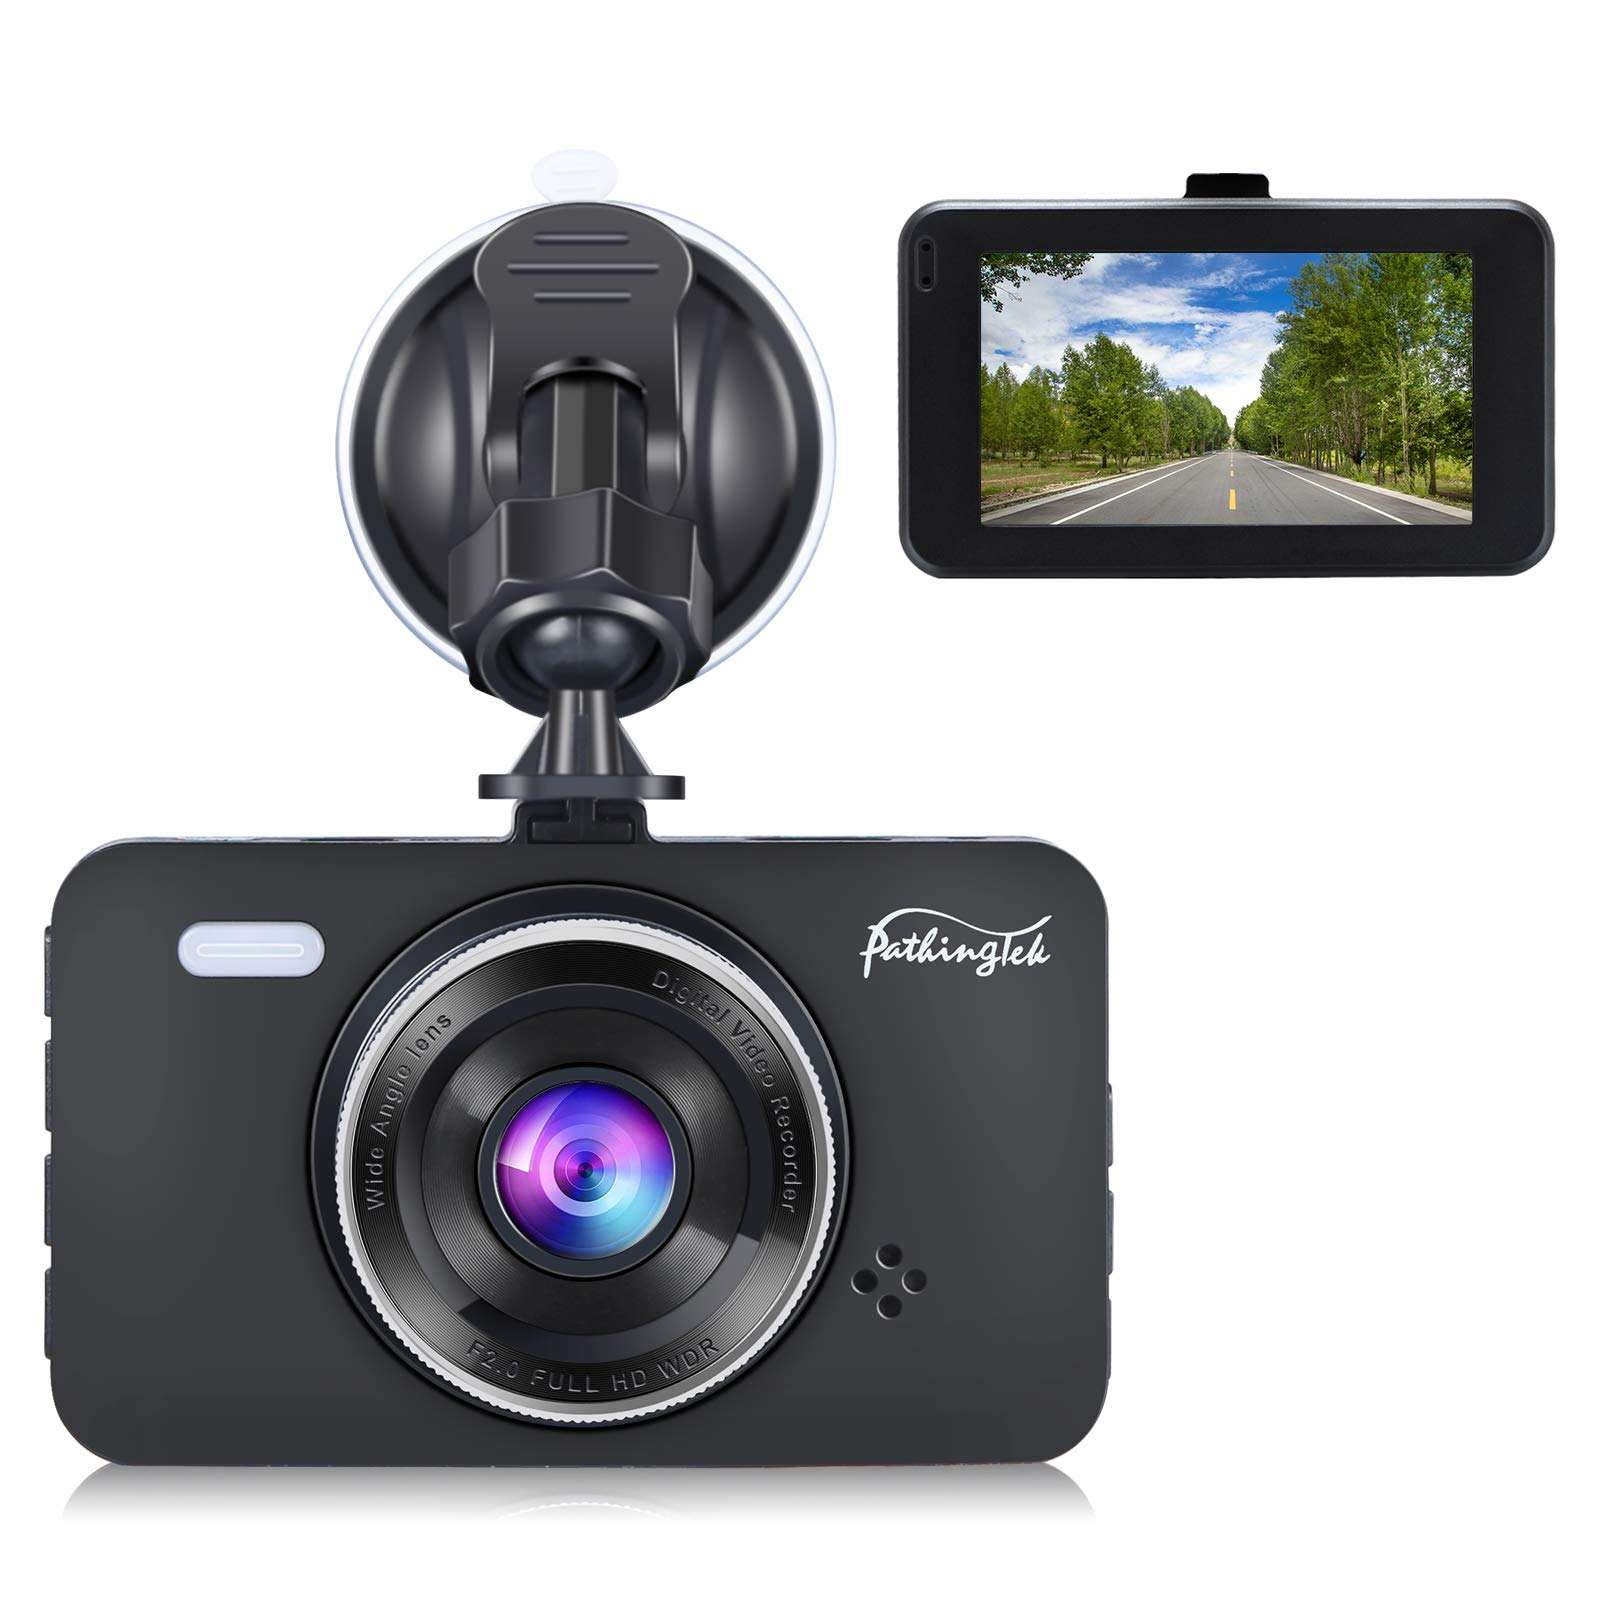 Dash Cam 1080P DVR Dashboard Camera Full HD 3'' LCD Screen 170°Wide Angle, WDR, G-Sensor, Loop Recording Motion Detection Excellent Video Images(Black)